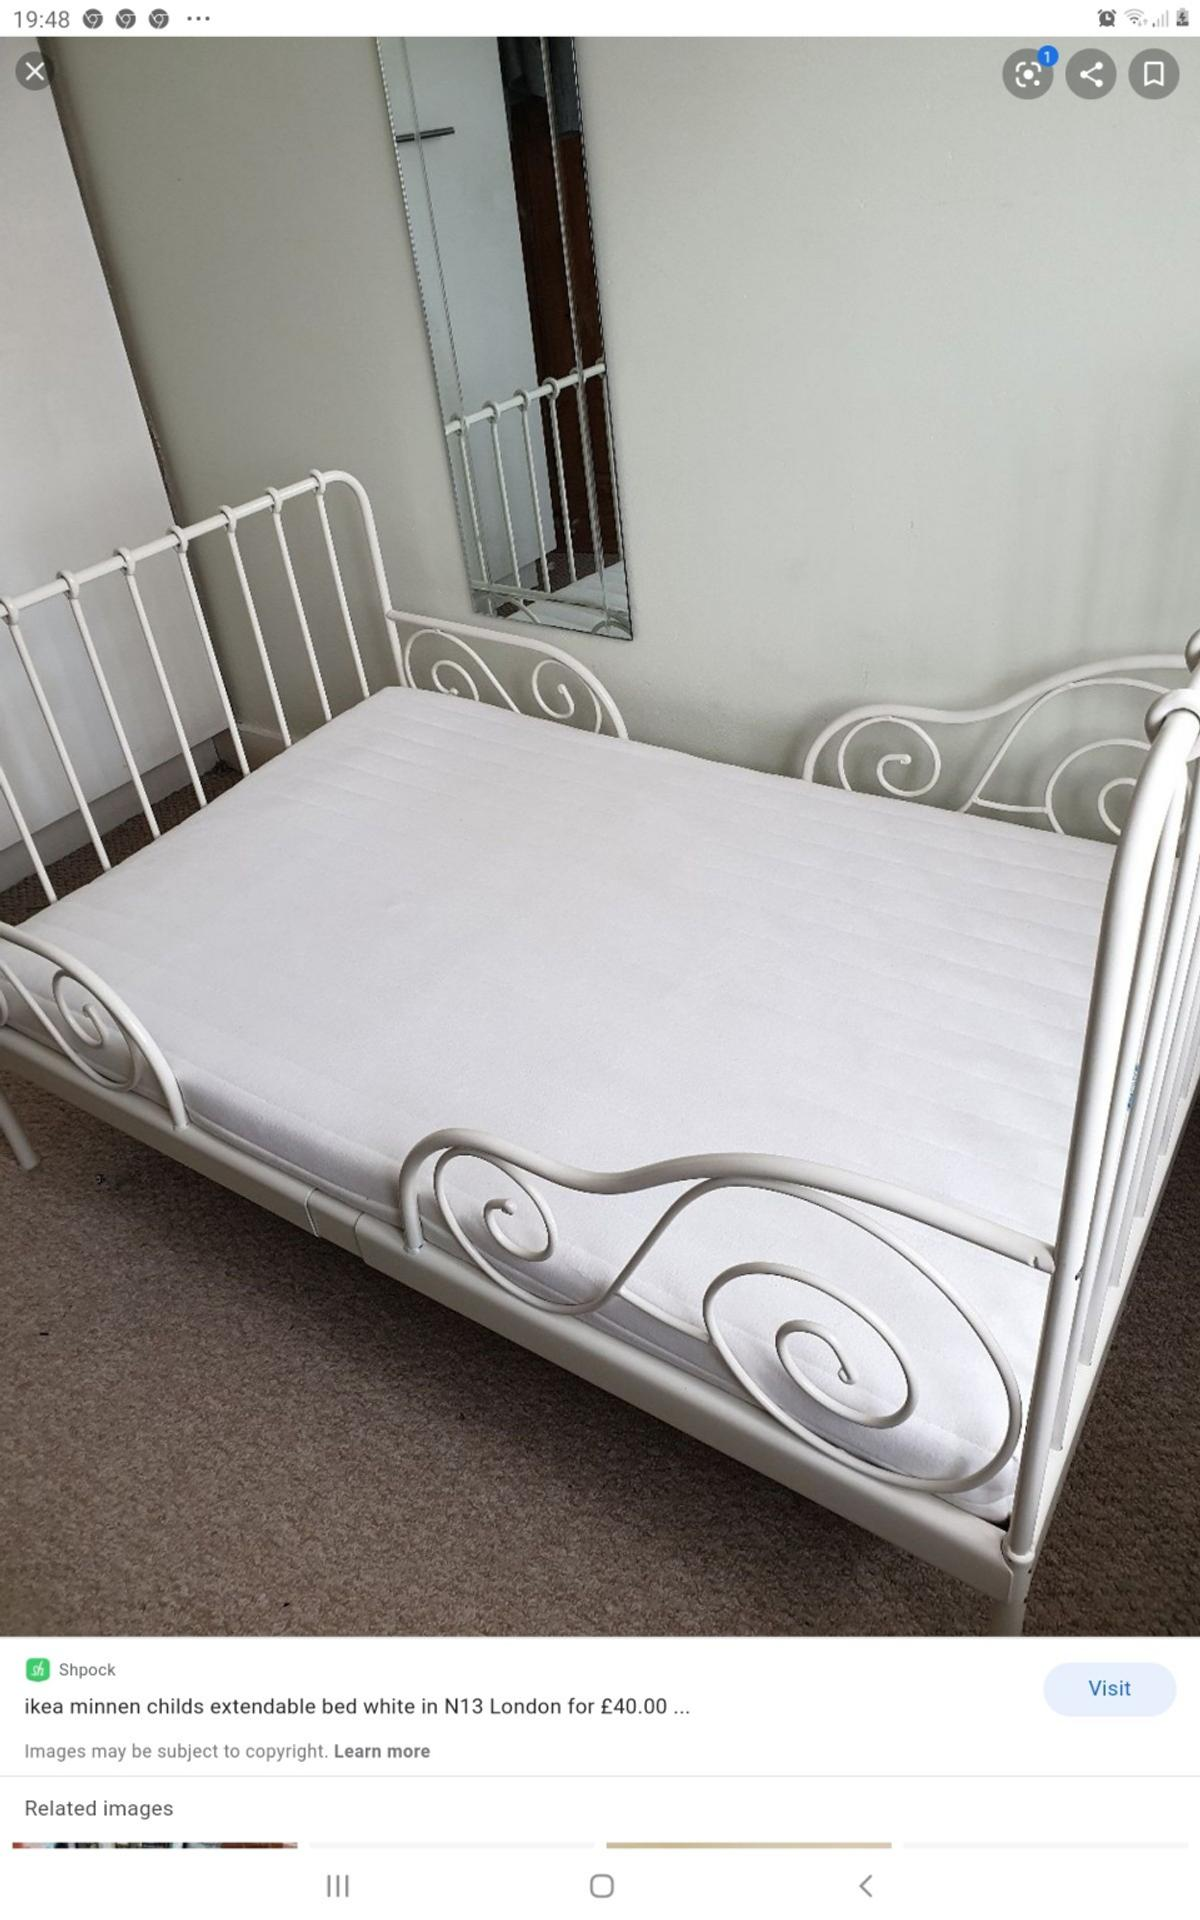 Picture of: White Metal Extendable Childrens Ikea Bed In Ig6 London For 40 00 For Sale Shpock